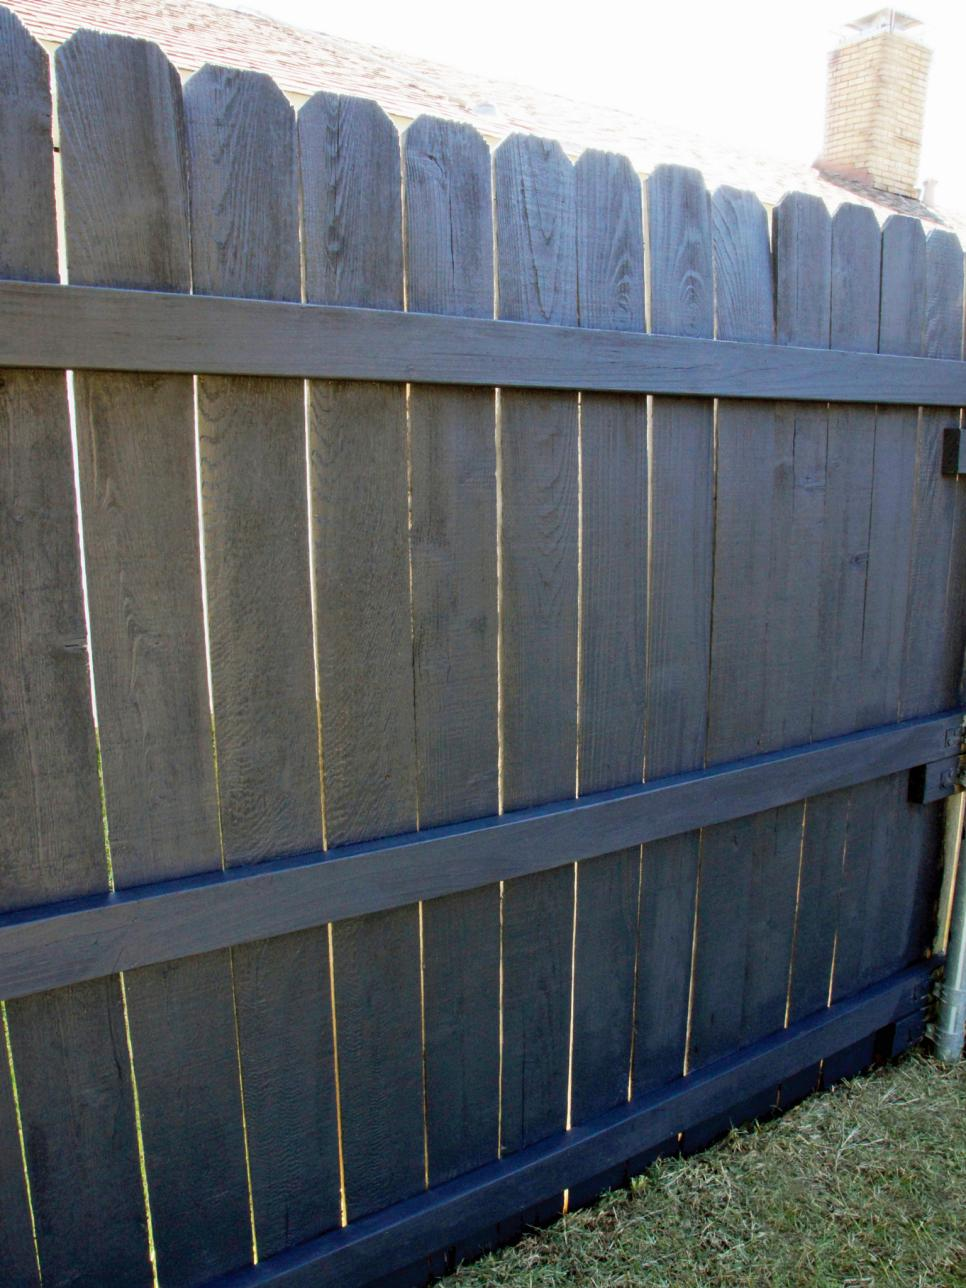 How to paint a fence hgtv Fence paint colors ideas